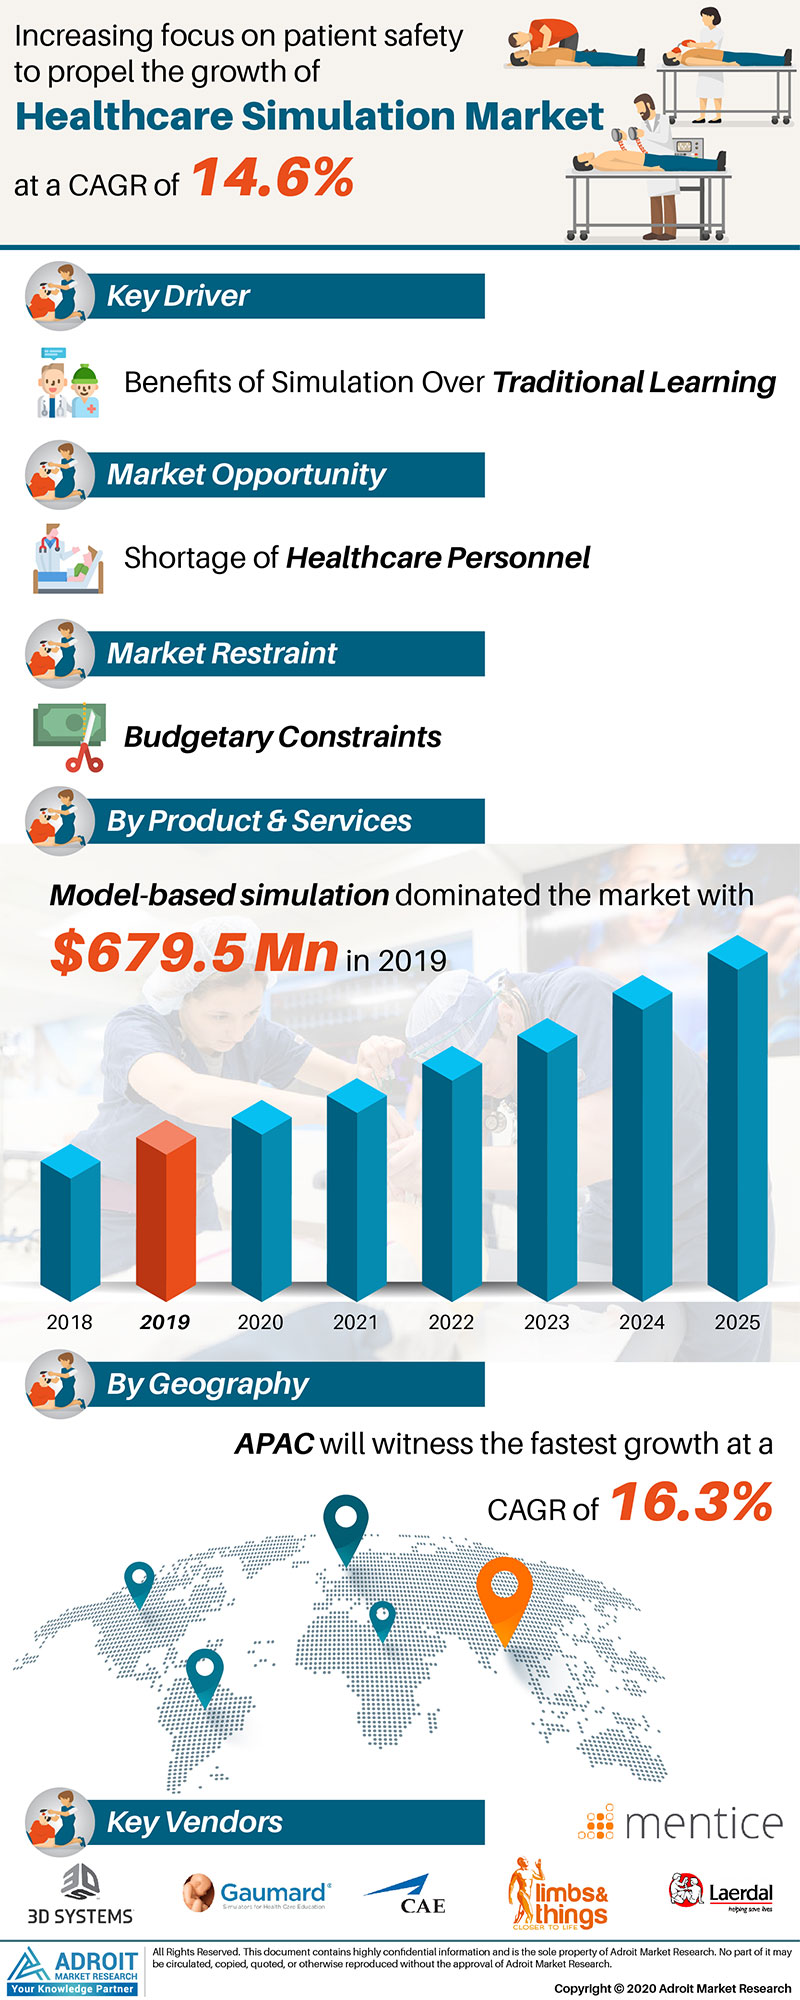 Healthcare Simulation Market Size 2017 By Application, Product, Region and Forecast 2019 to 2025